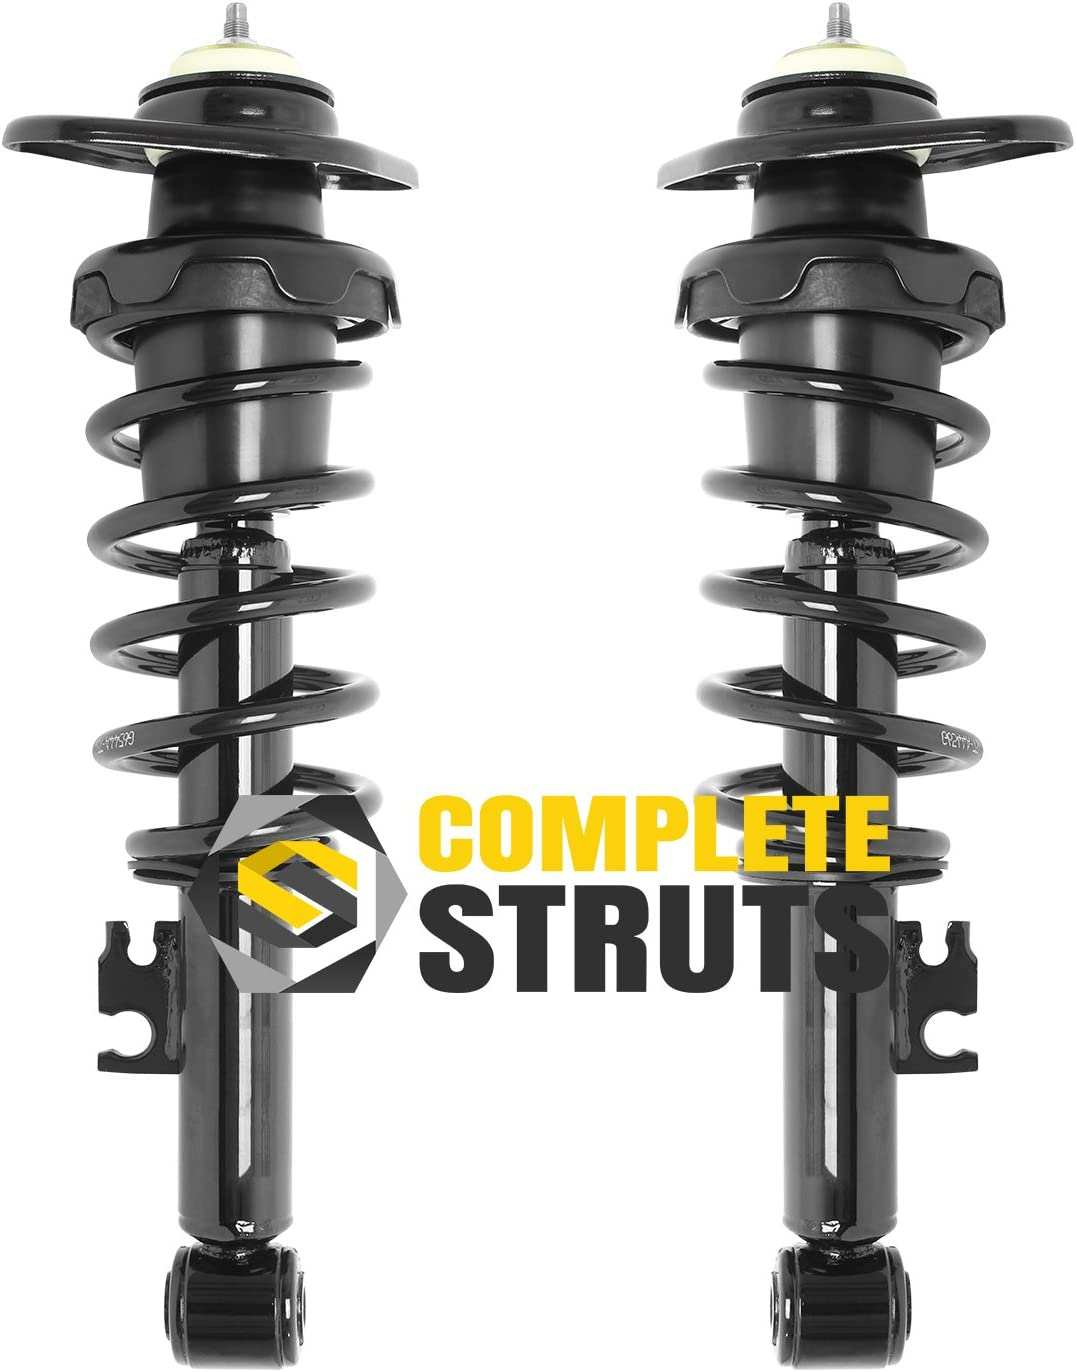 Rear Pair Quick Complete Struts /& Coil Springs for 2002-2008 Mini Cooper